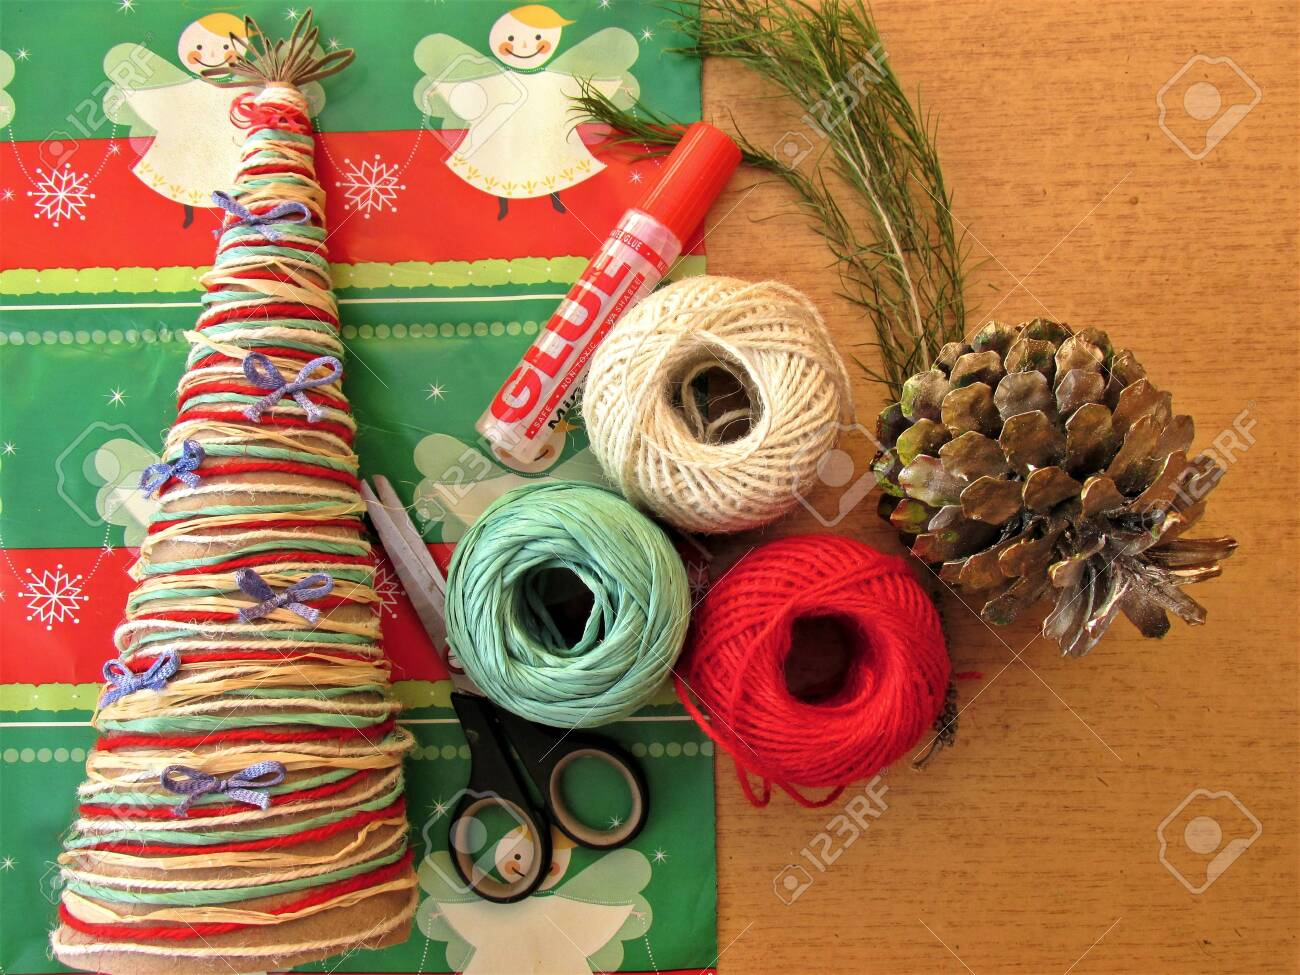 Do It Yourself Christmas Decorations.Diy Homemade Christmas Tree Materials For Christmas Crafts Project